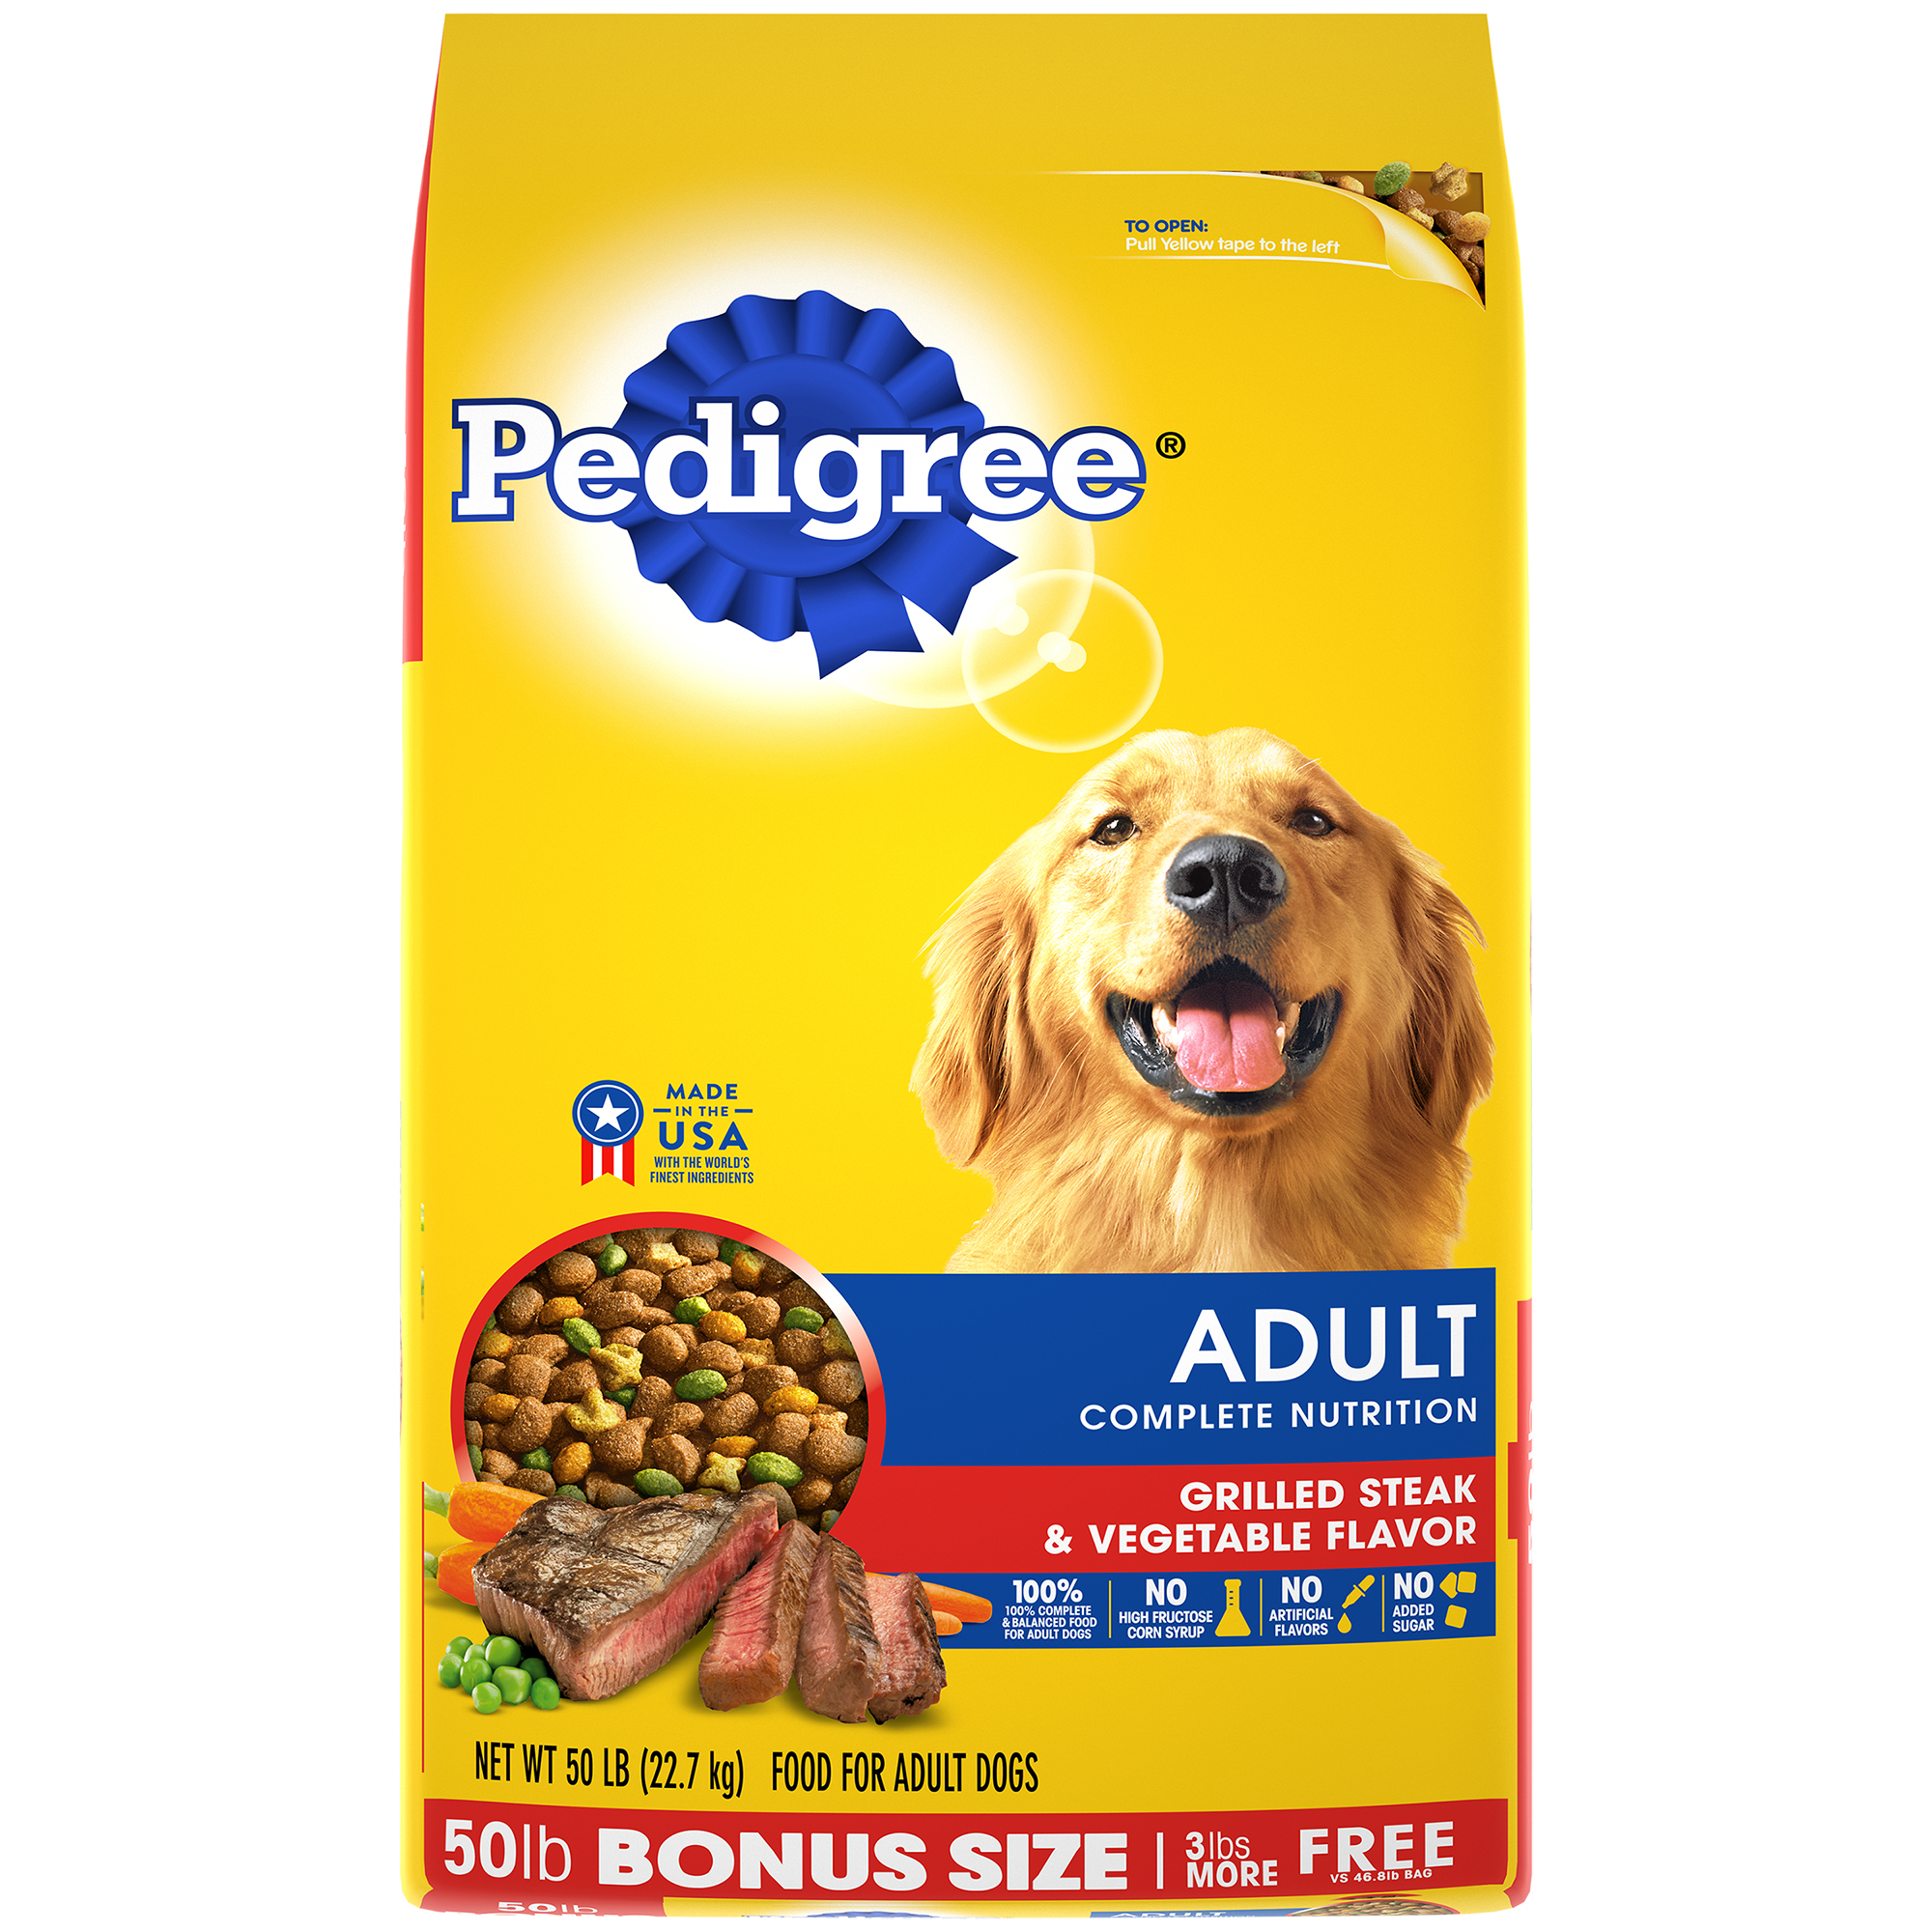 Pedigree Adult Complete Nutrition Grilled Steak & Vegetable Flavor Dry Dog Food, 50-lb